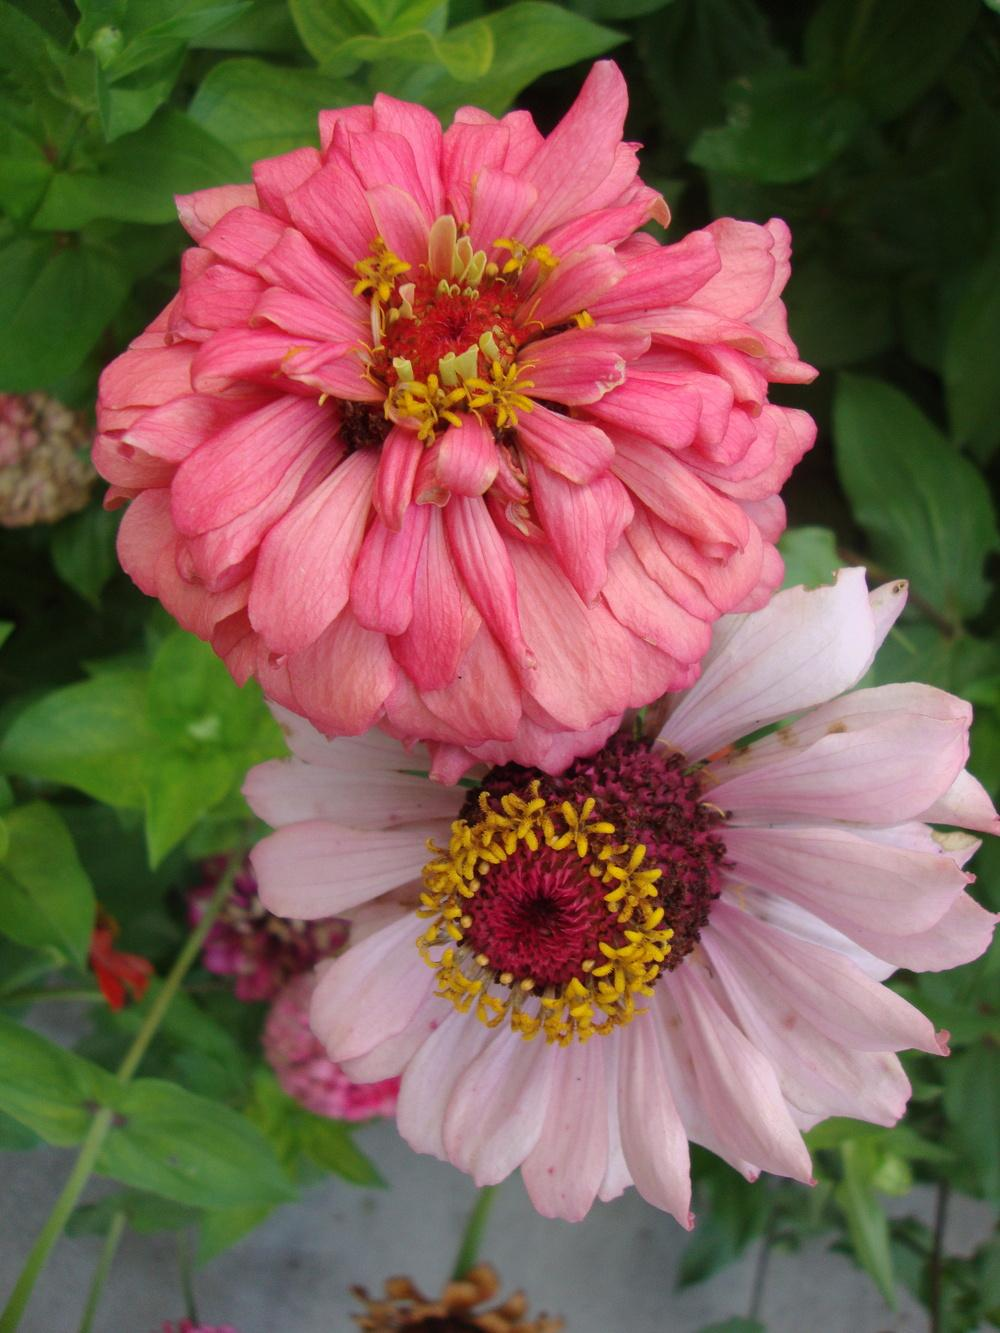 Photo of Zinnia uploaded by Paul2032